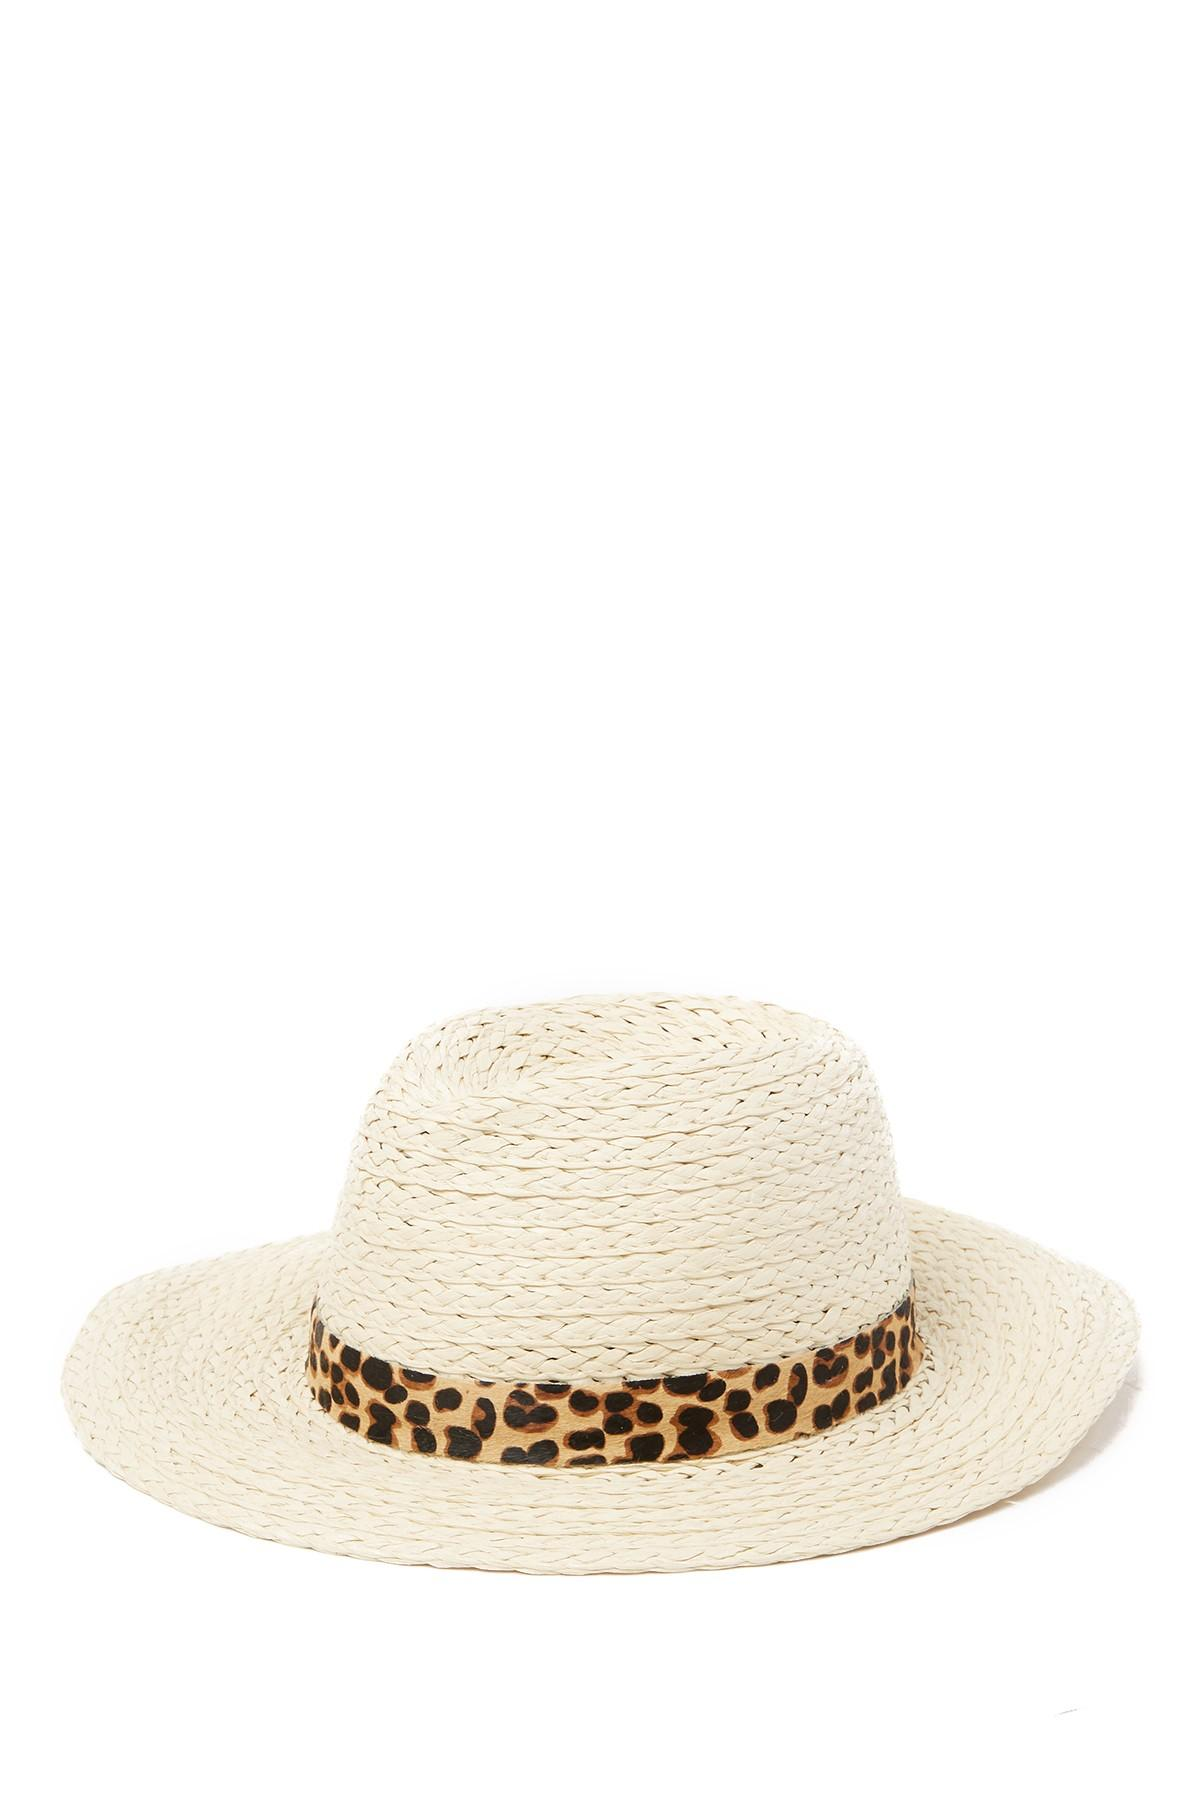 8e5301117 Women's Natural Genuine Pony Hair Banded Panama Hat